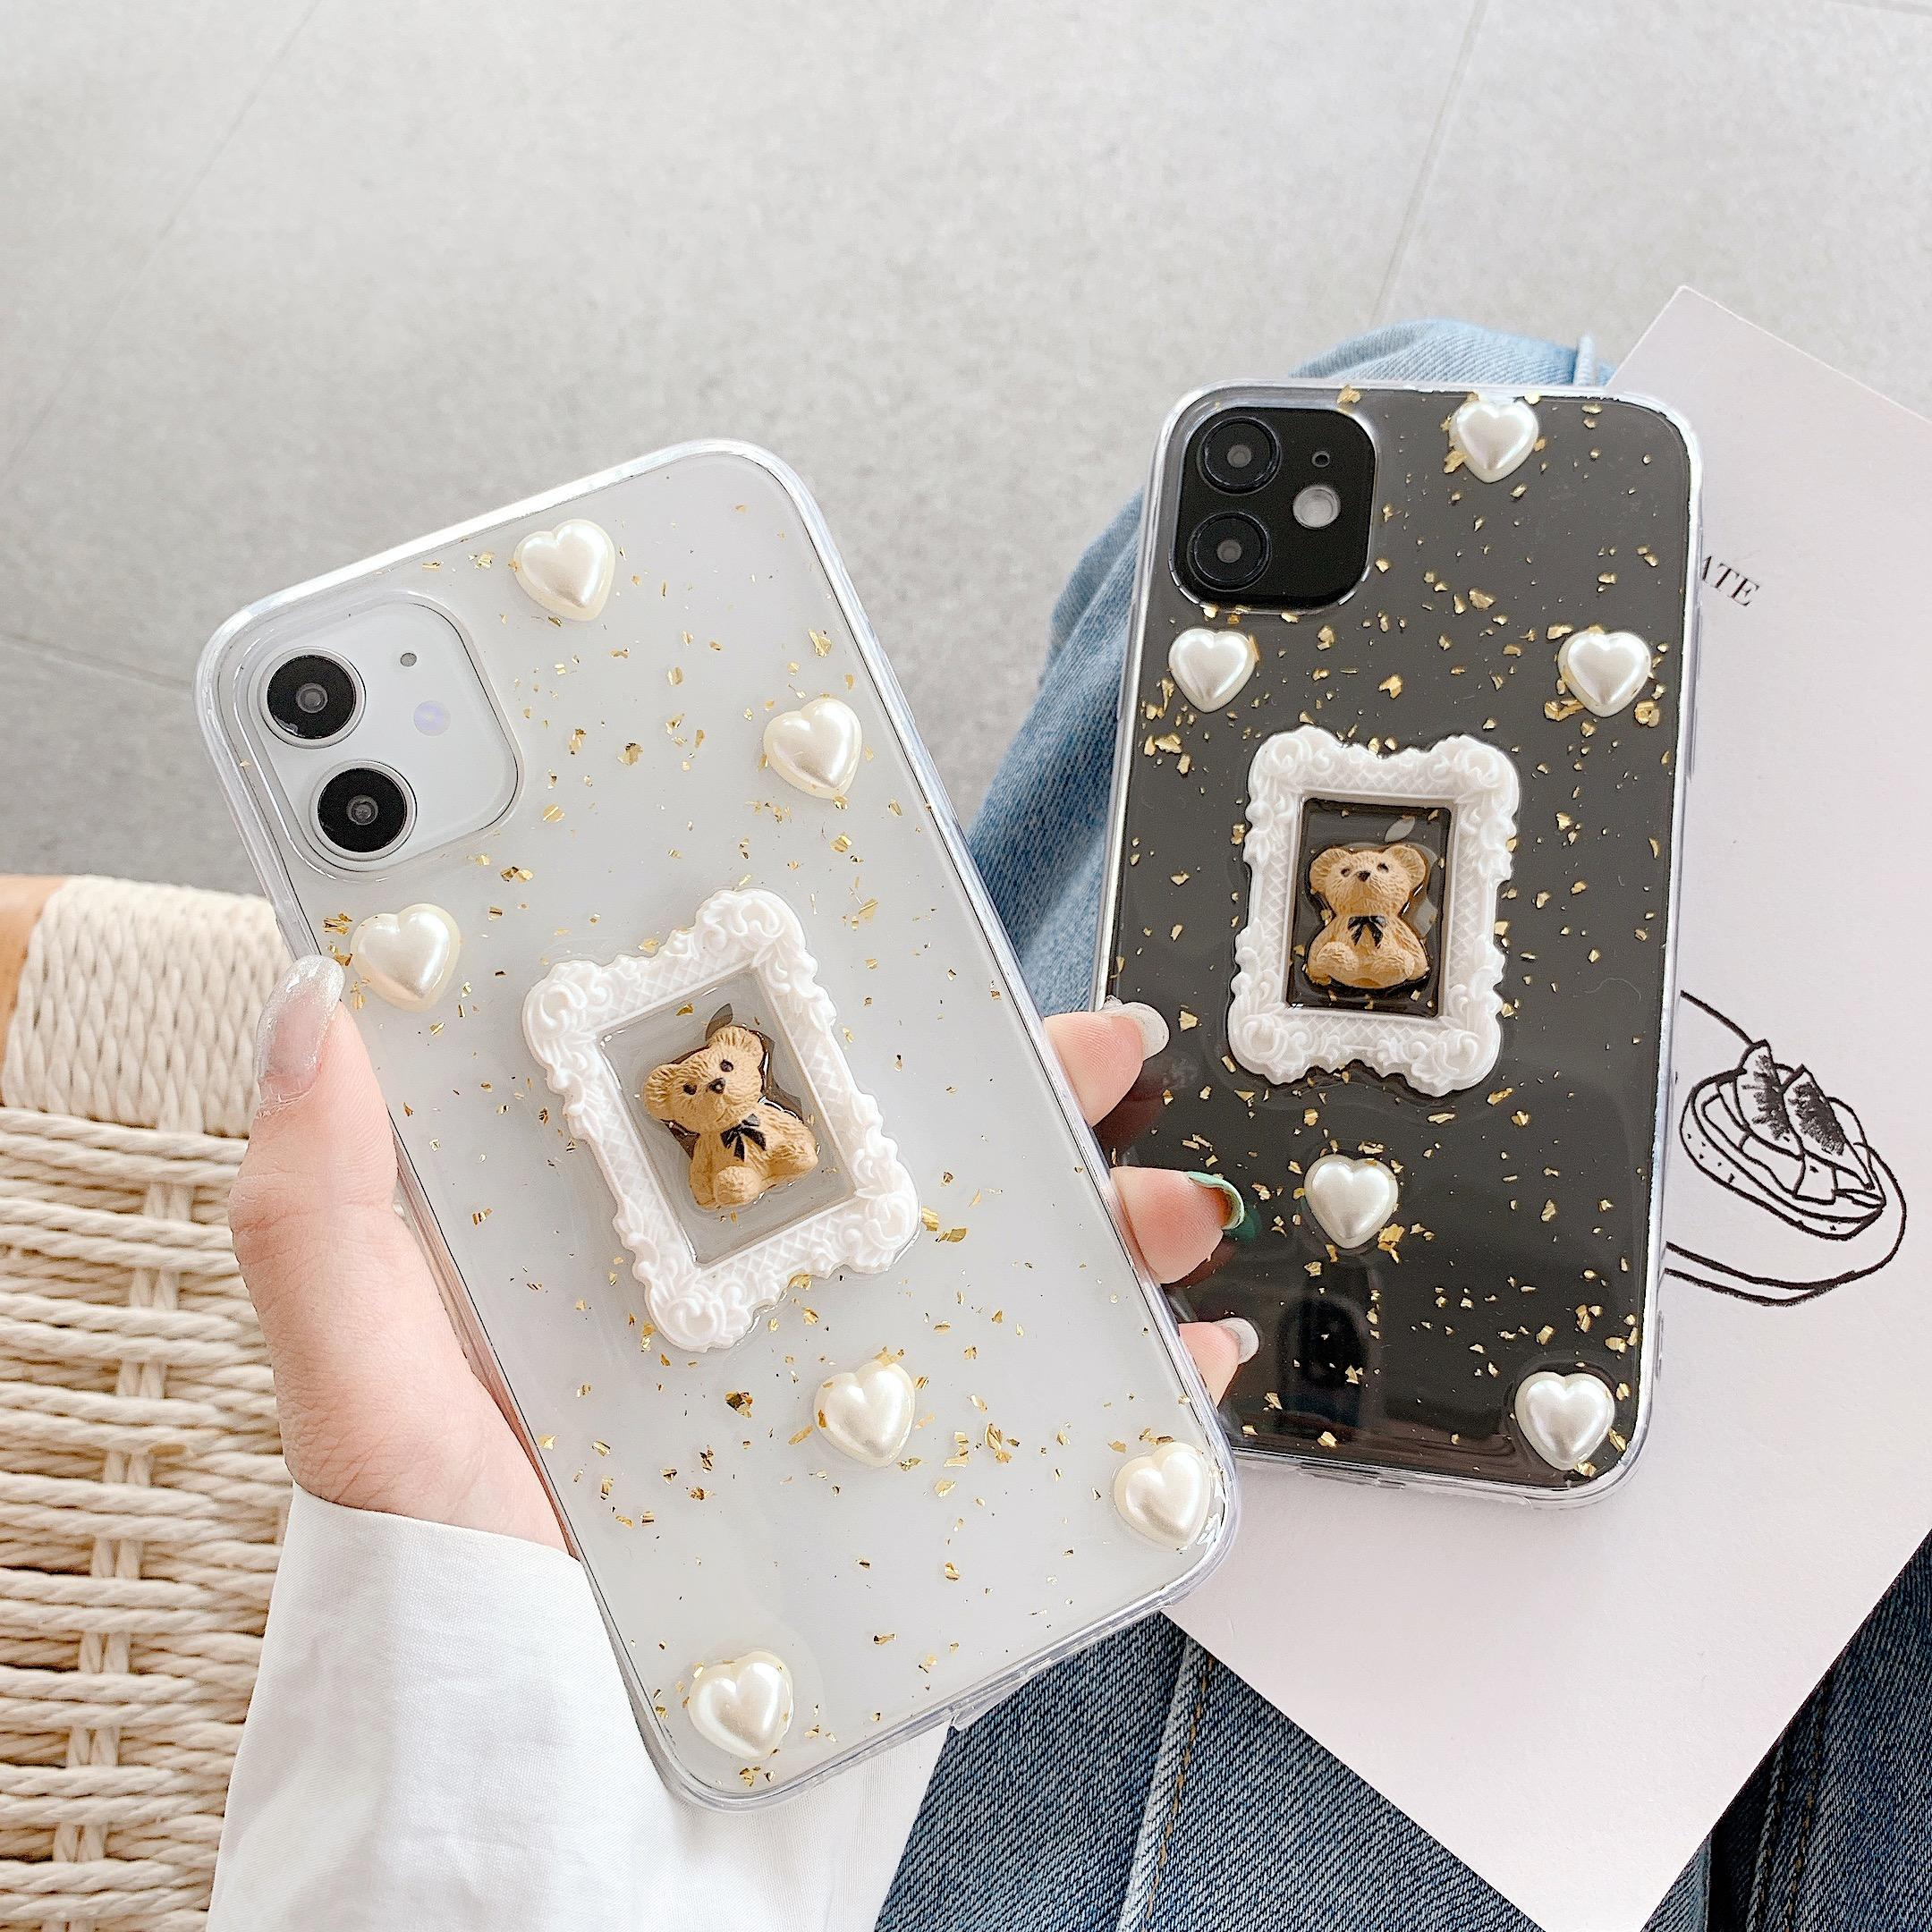 Skid-Proof Anti-Shock Lucu Kartun <span class=keywords><strong>Beruang</strong></span> Tetes Lem Matte Phone Case untuk iPhone 6/7/8/X/X/XR/XS <span class=keywords><strong>MAX</strong></span>